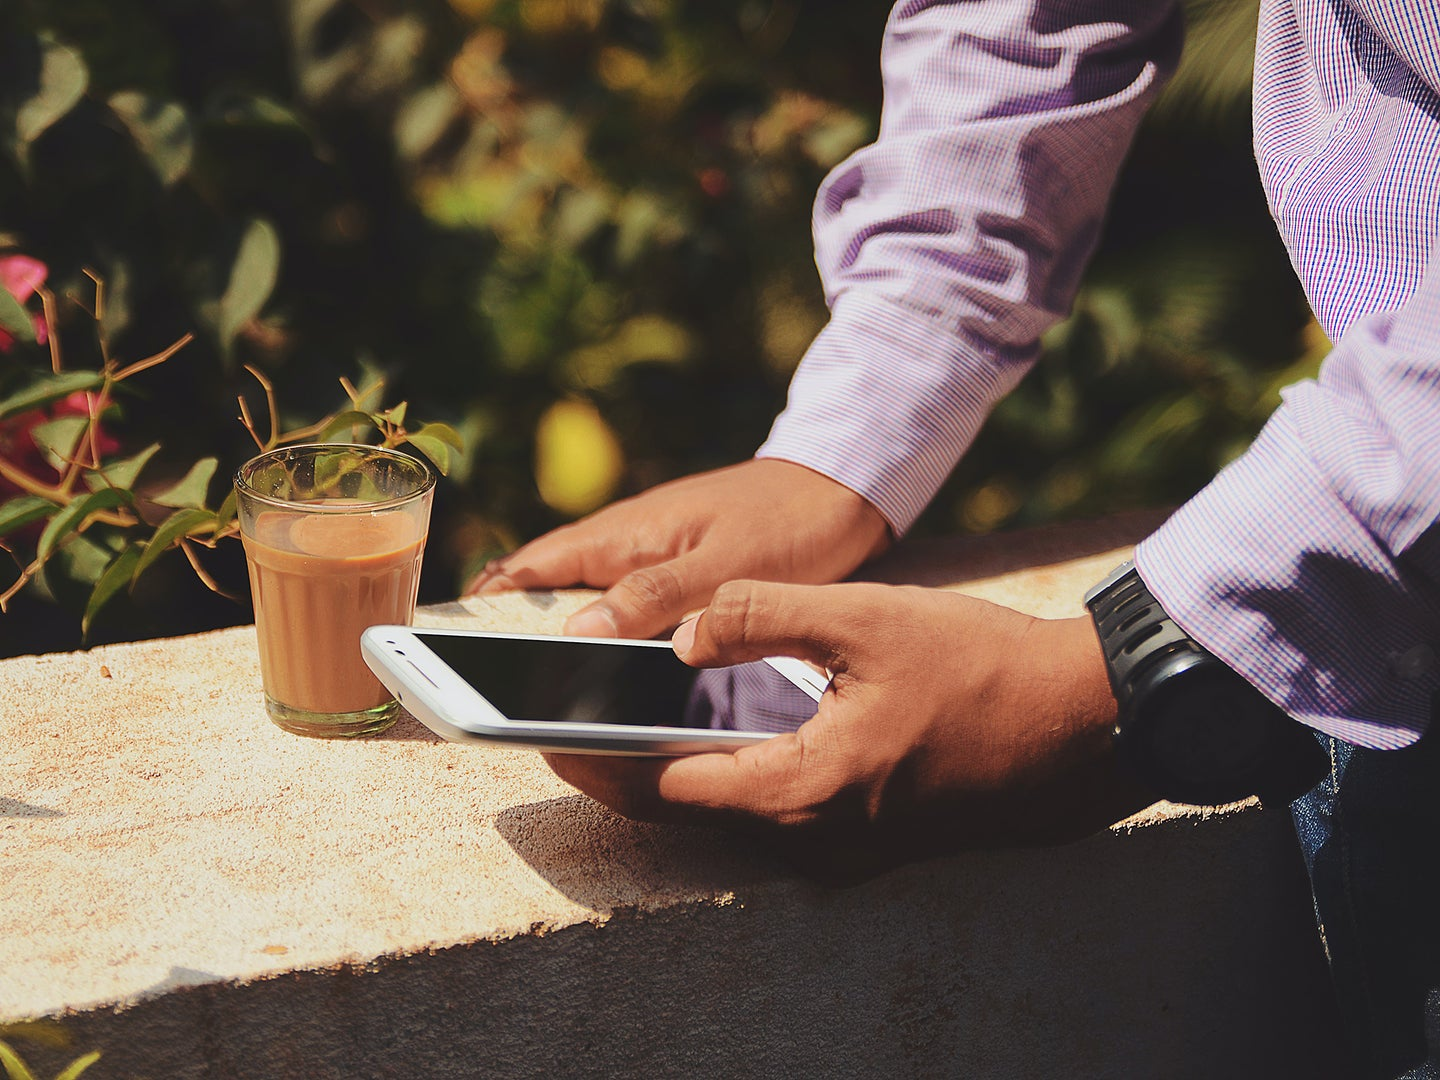 A person standing outside bear a concrete wall, holding their phone with a coffee nearby.